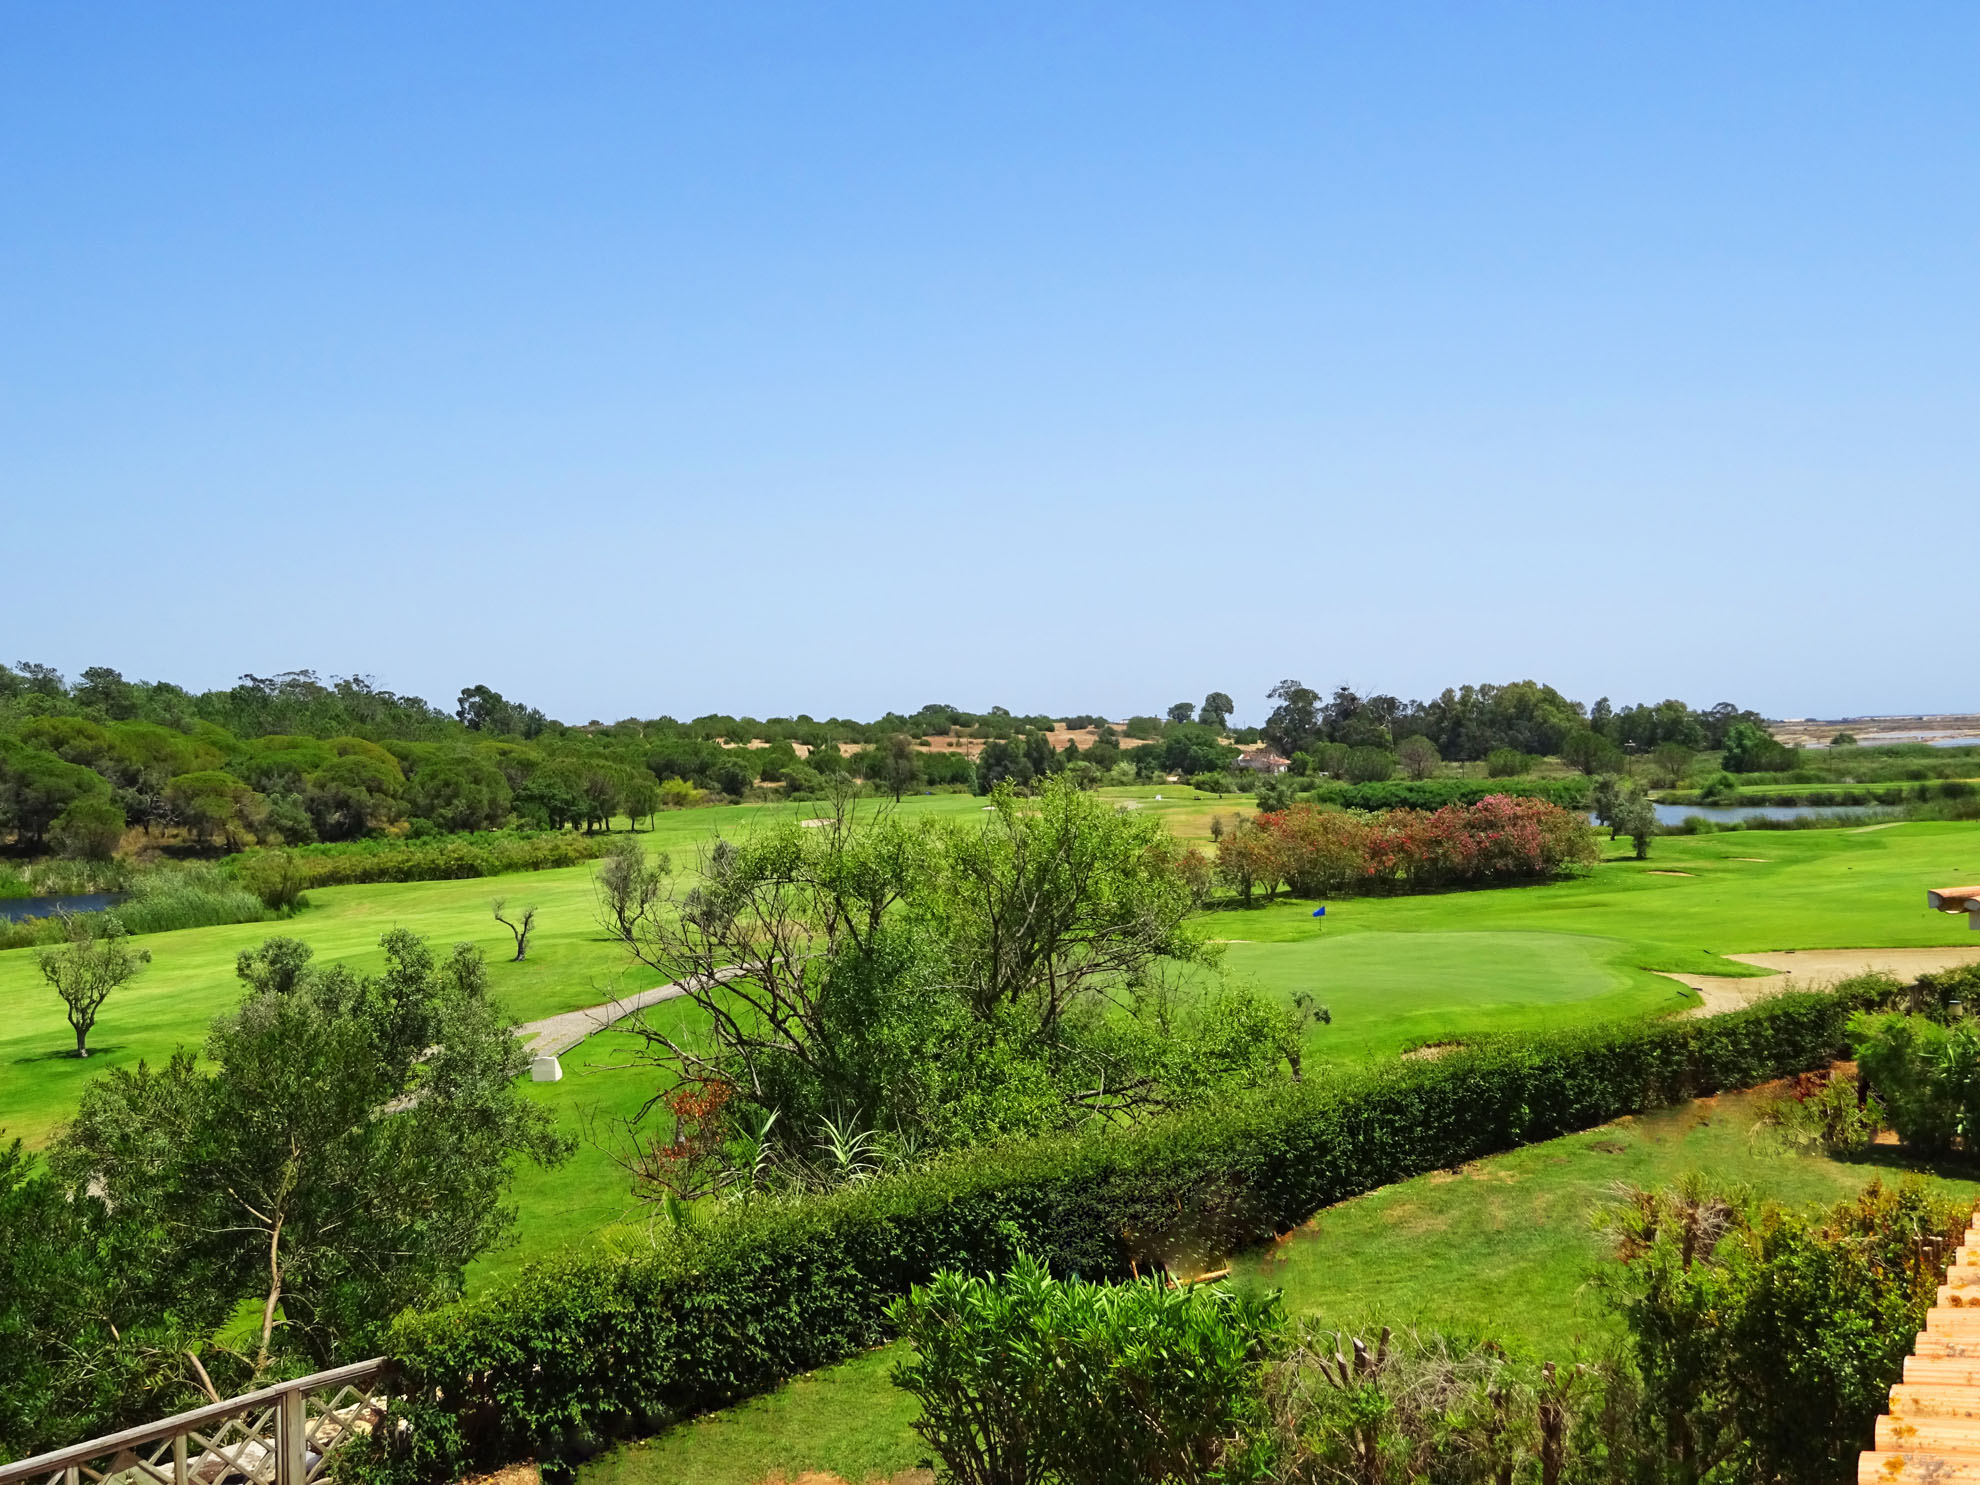 Long Term Rental in Quinta do Lago with Fabulous Golf and Country Views – 3 Bedroom Townhouse Corner Unit with garden and pool